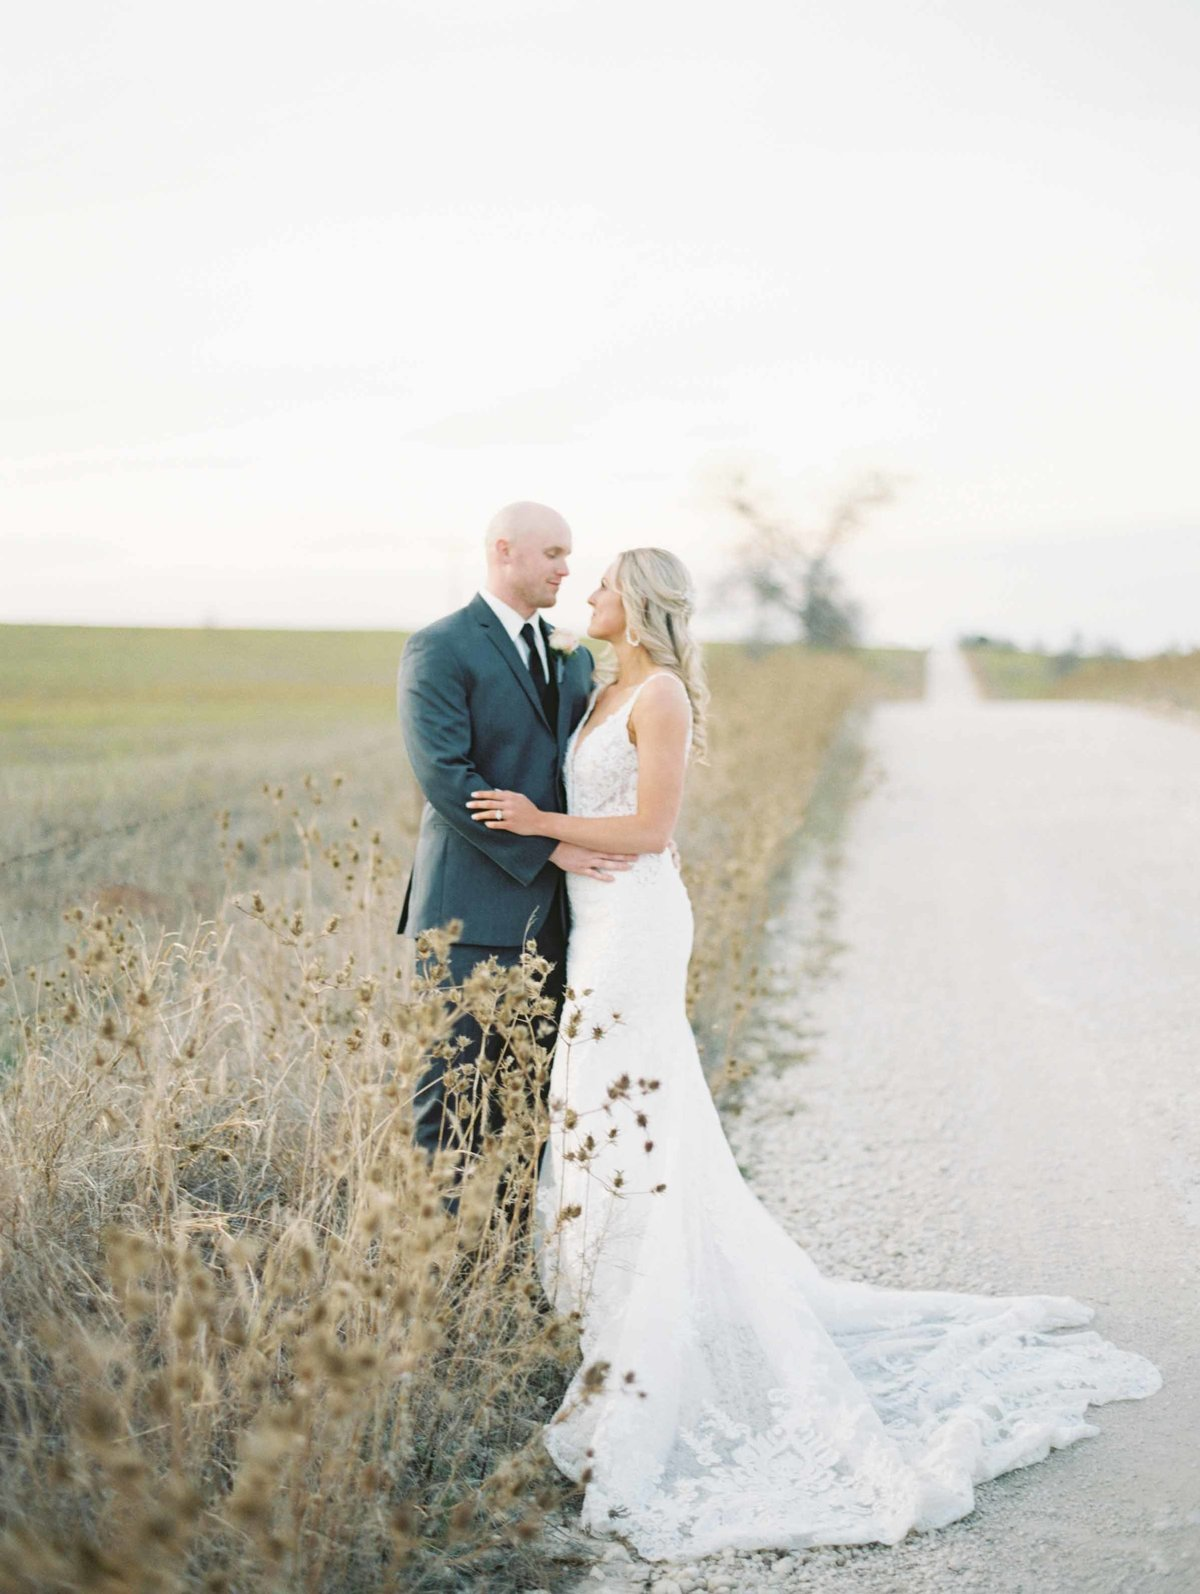 Angel_owens_photography_wedding92